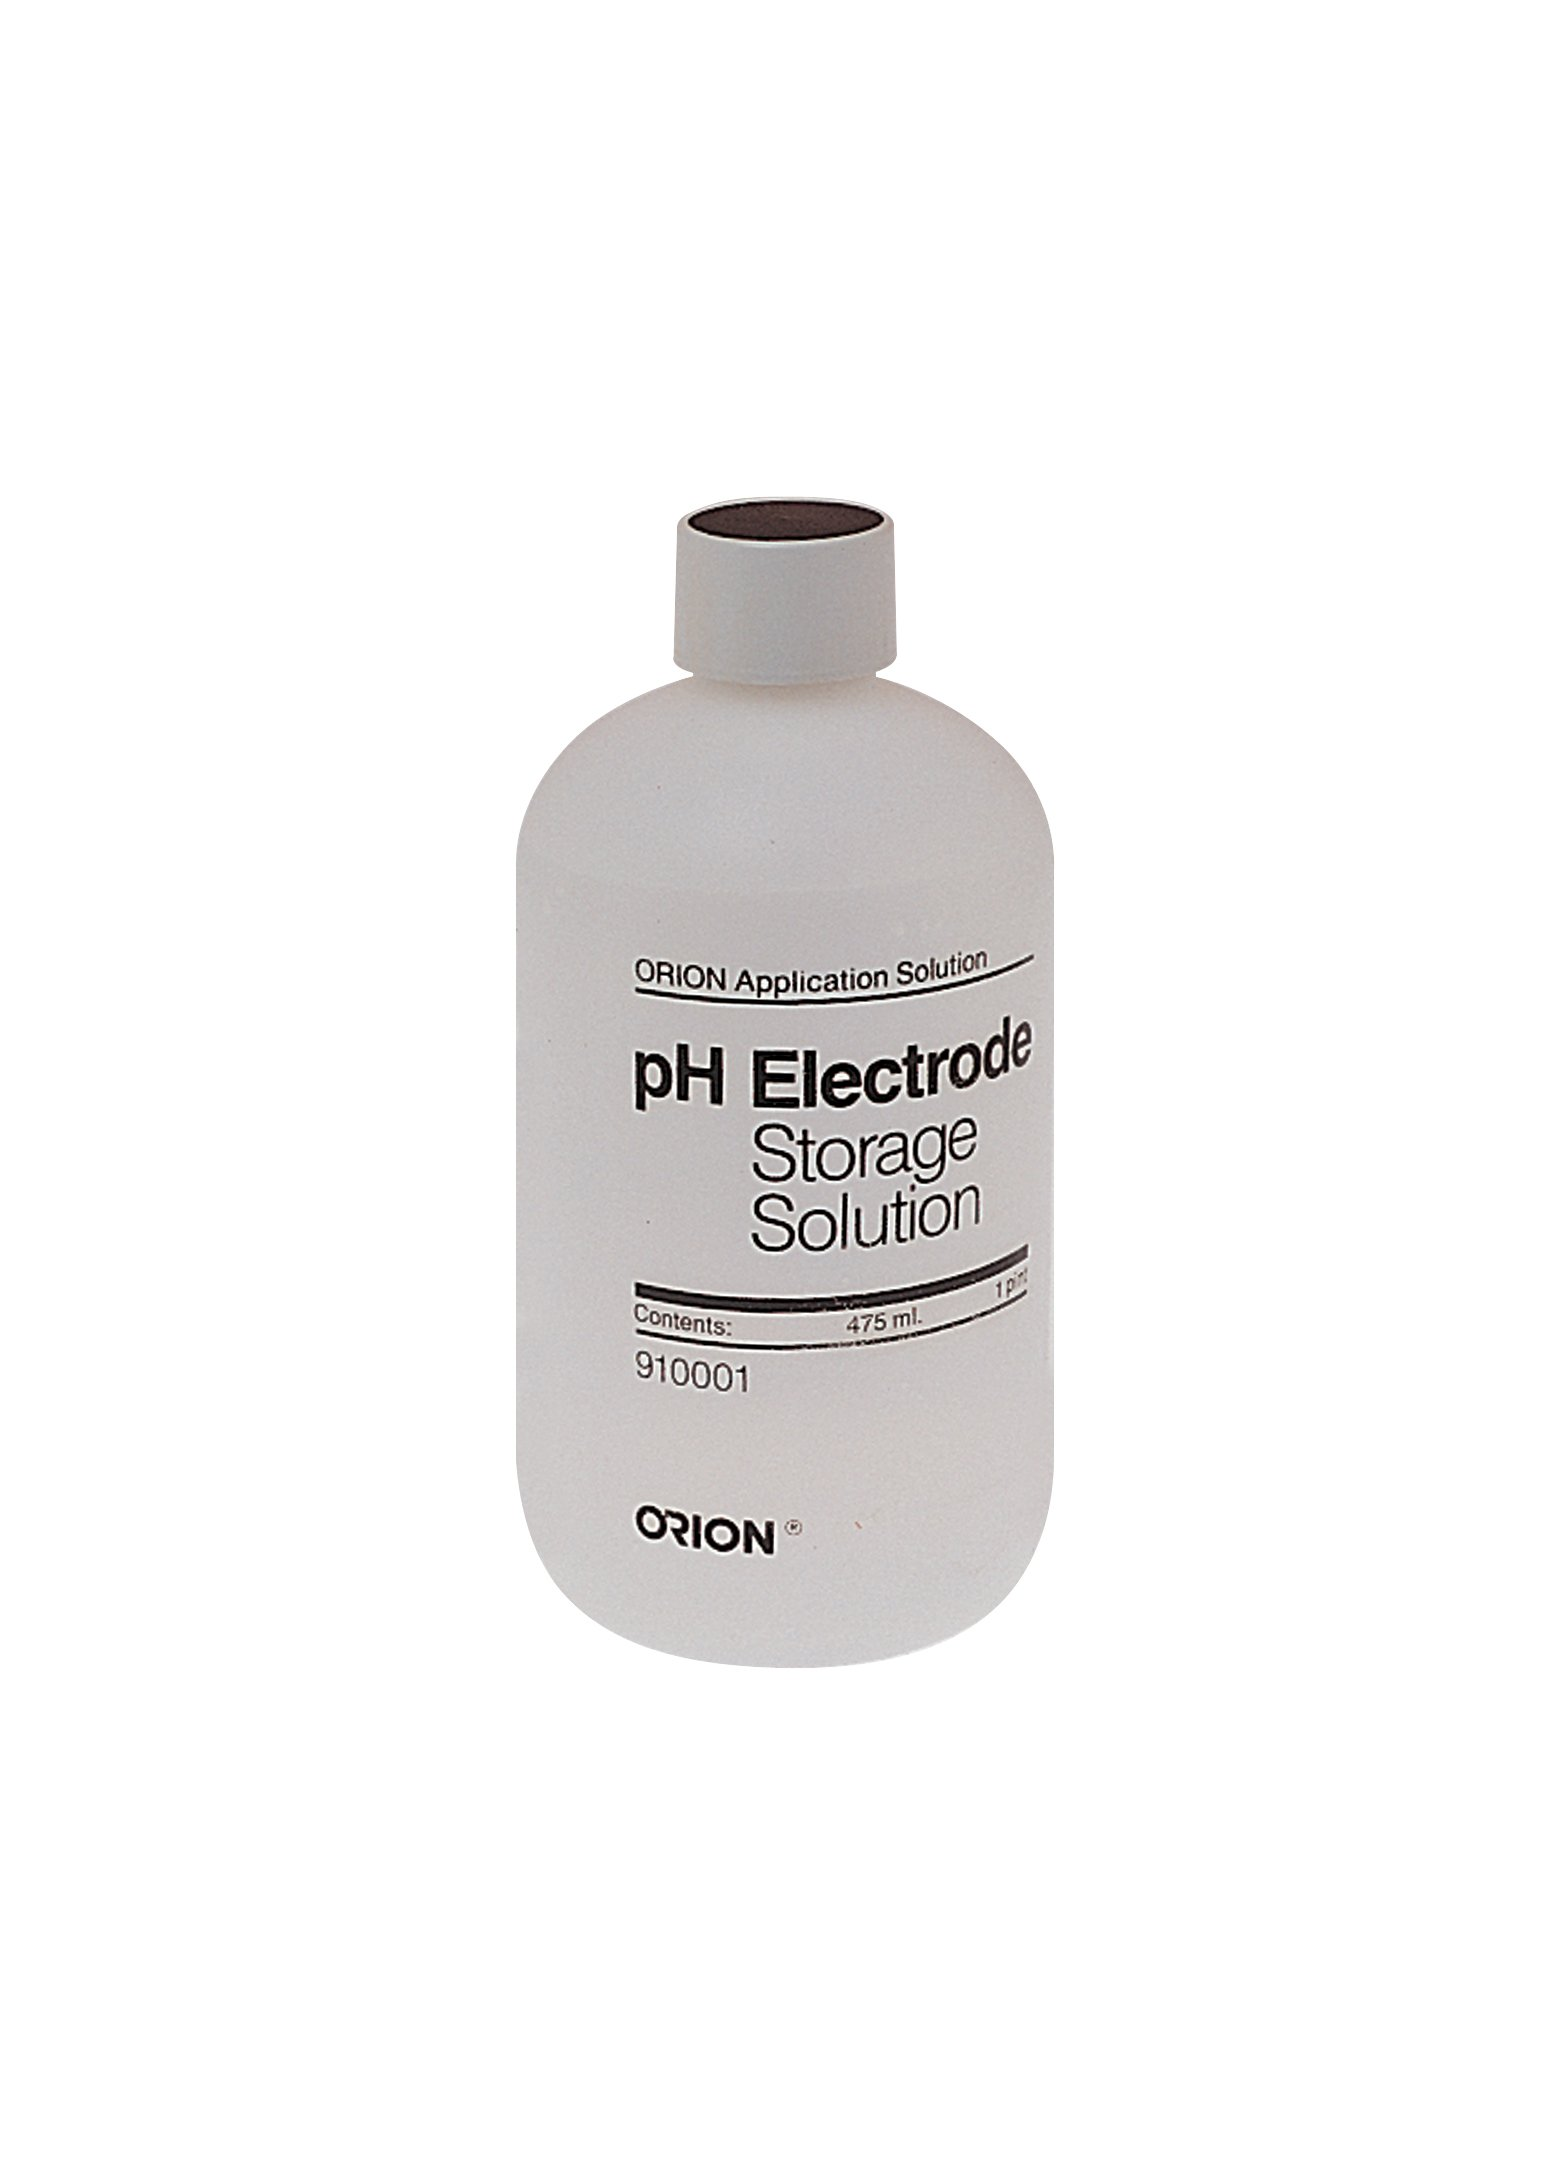 Thermo Scientific Orion pH Electrode Storage Solution, 475 ml Bottle